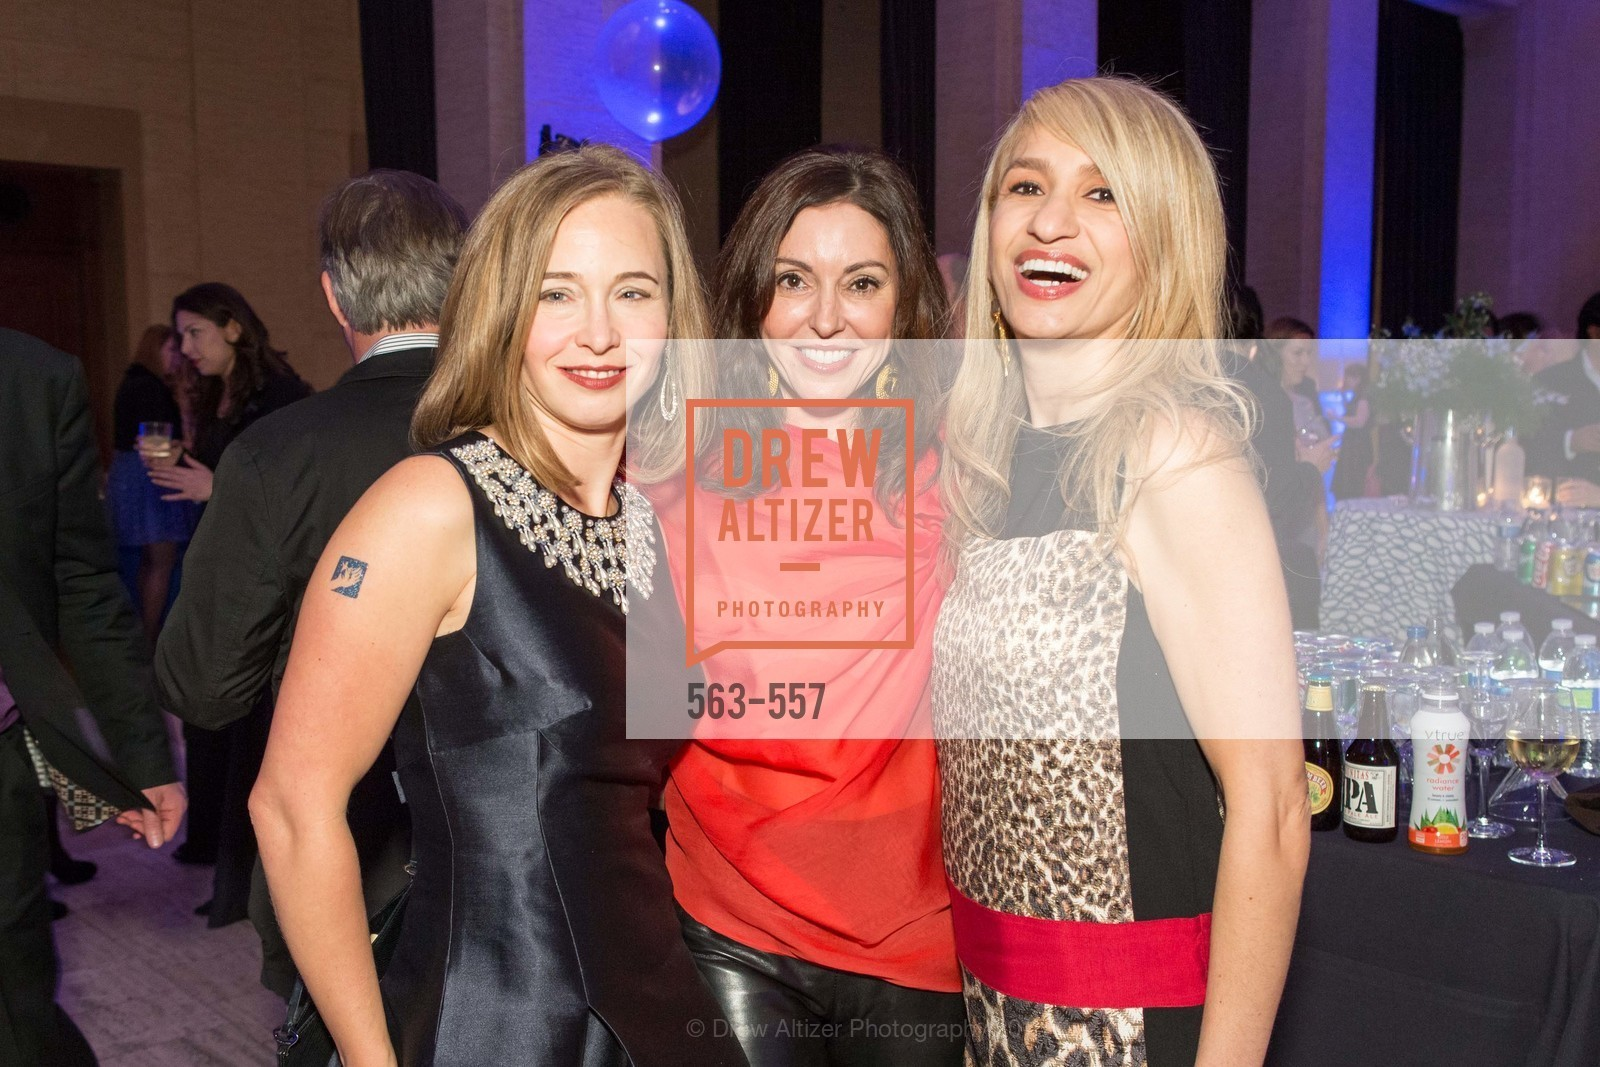 Mylea Charvat, Mary Beth Lamotte, Navid Armstrong, Cirque du Soiree 2015, The Bentley Reserve. 2525 Van Ness St, November 19th, 2015,Drew Altizer, Drew Altizer Photography, full-service agency, private events, San Francisco photographer, photographer california